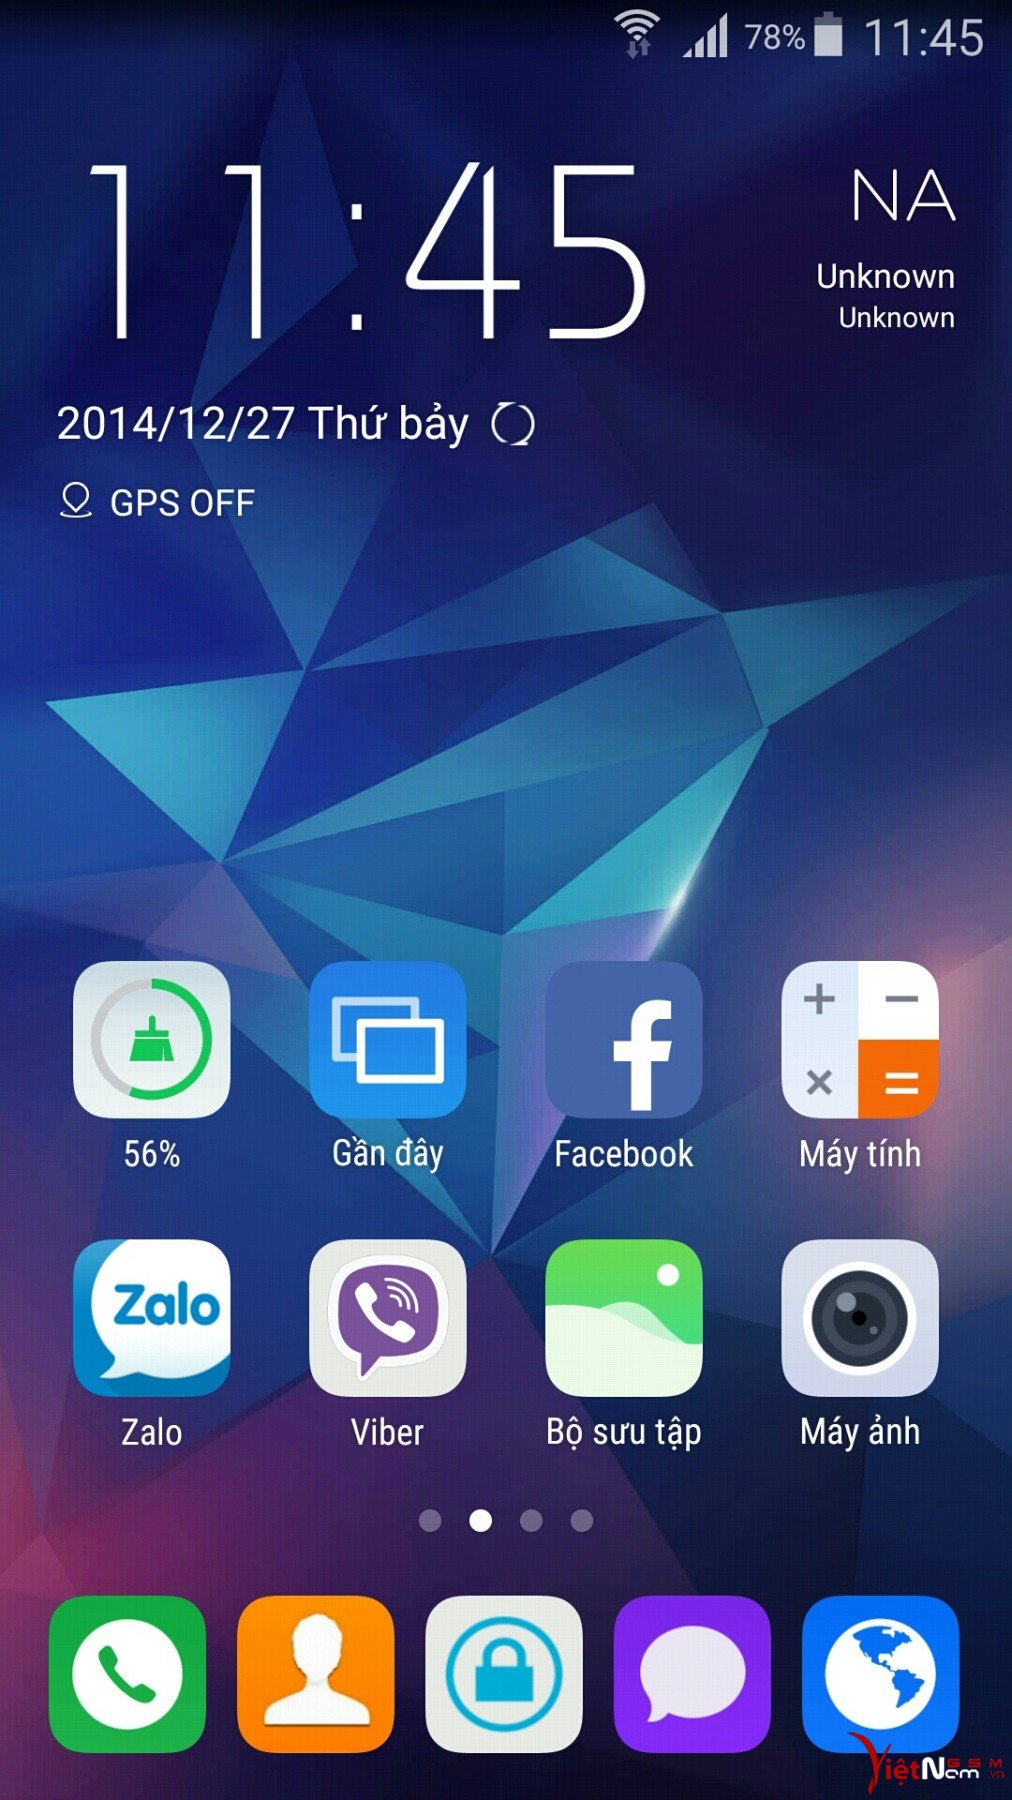 Screenshot_2014-12-27-11-45-22.jpg